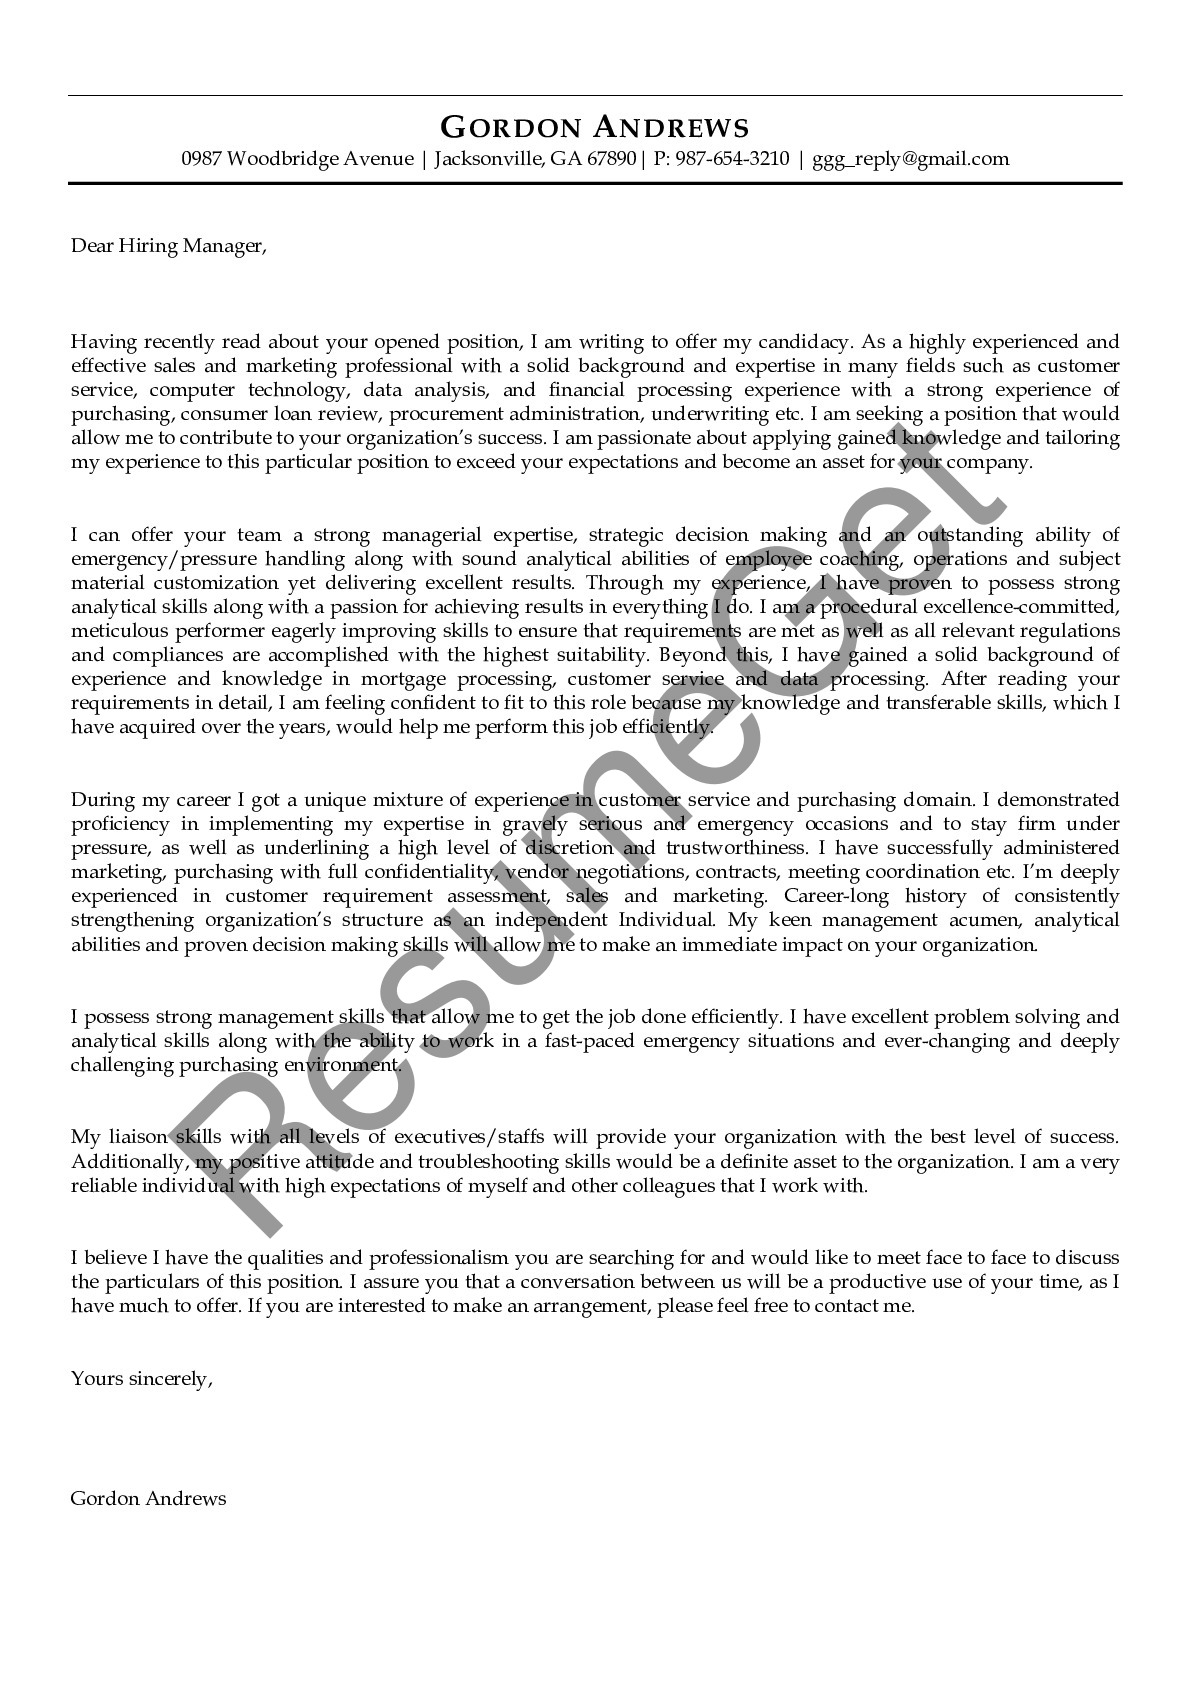 Cover Letter for Marketing Professional